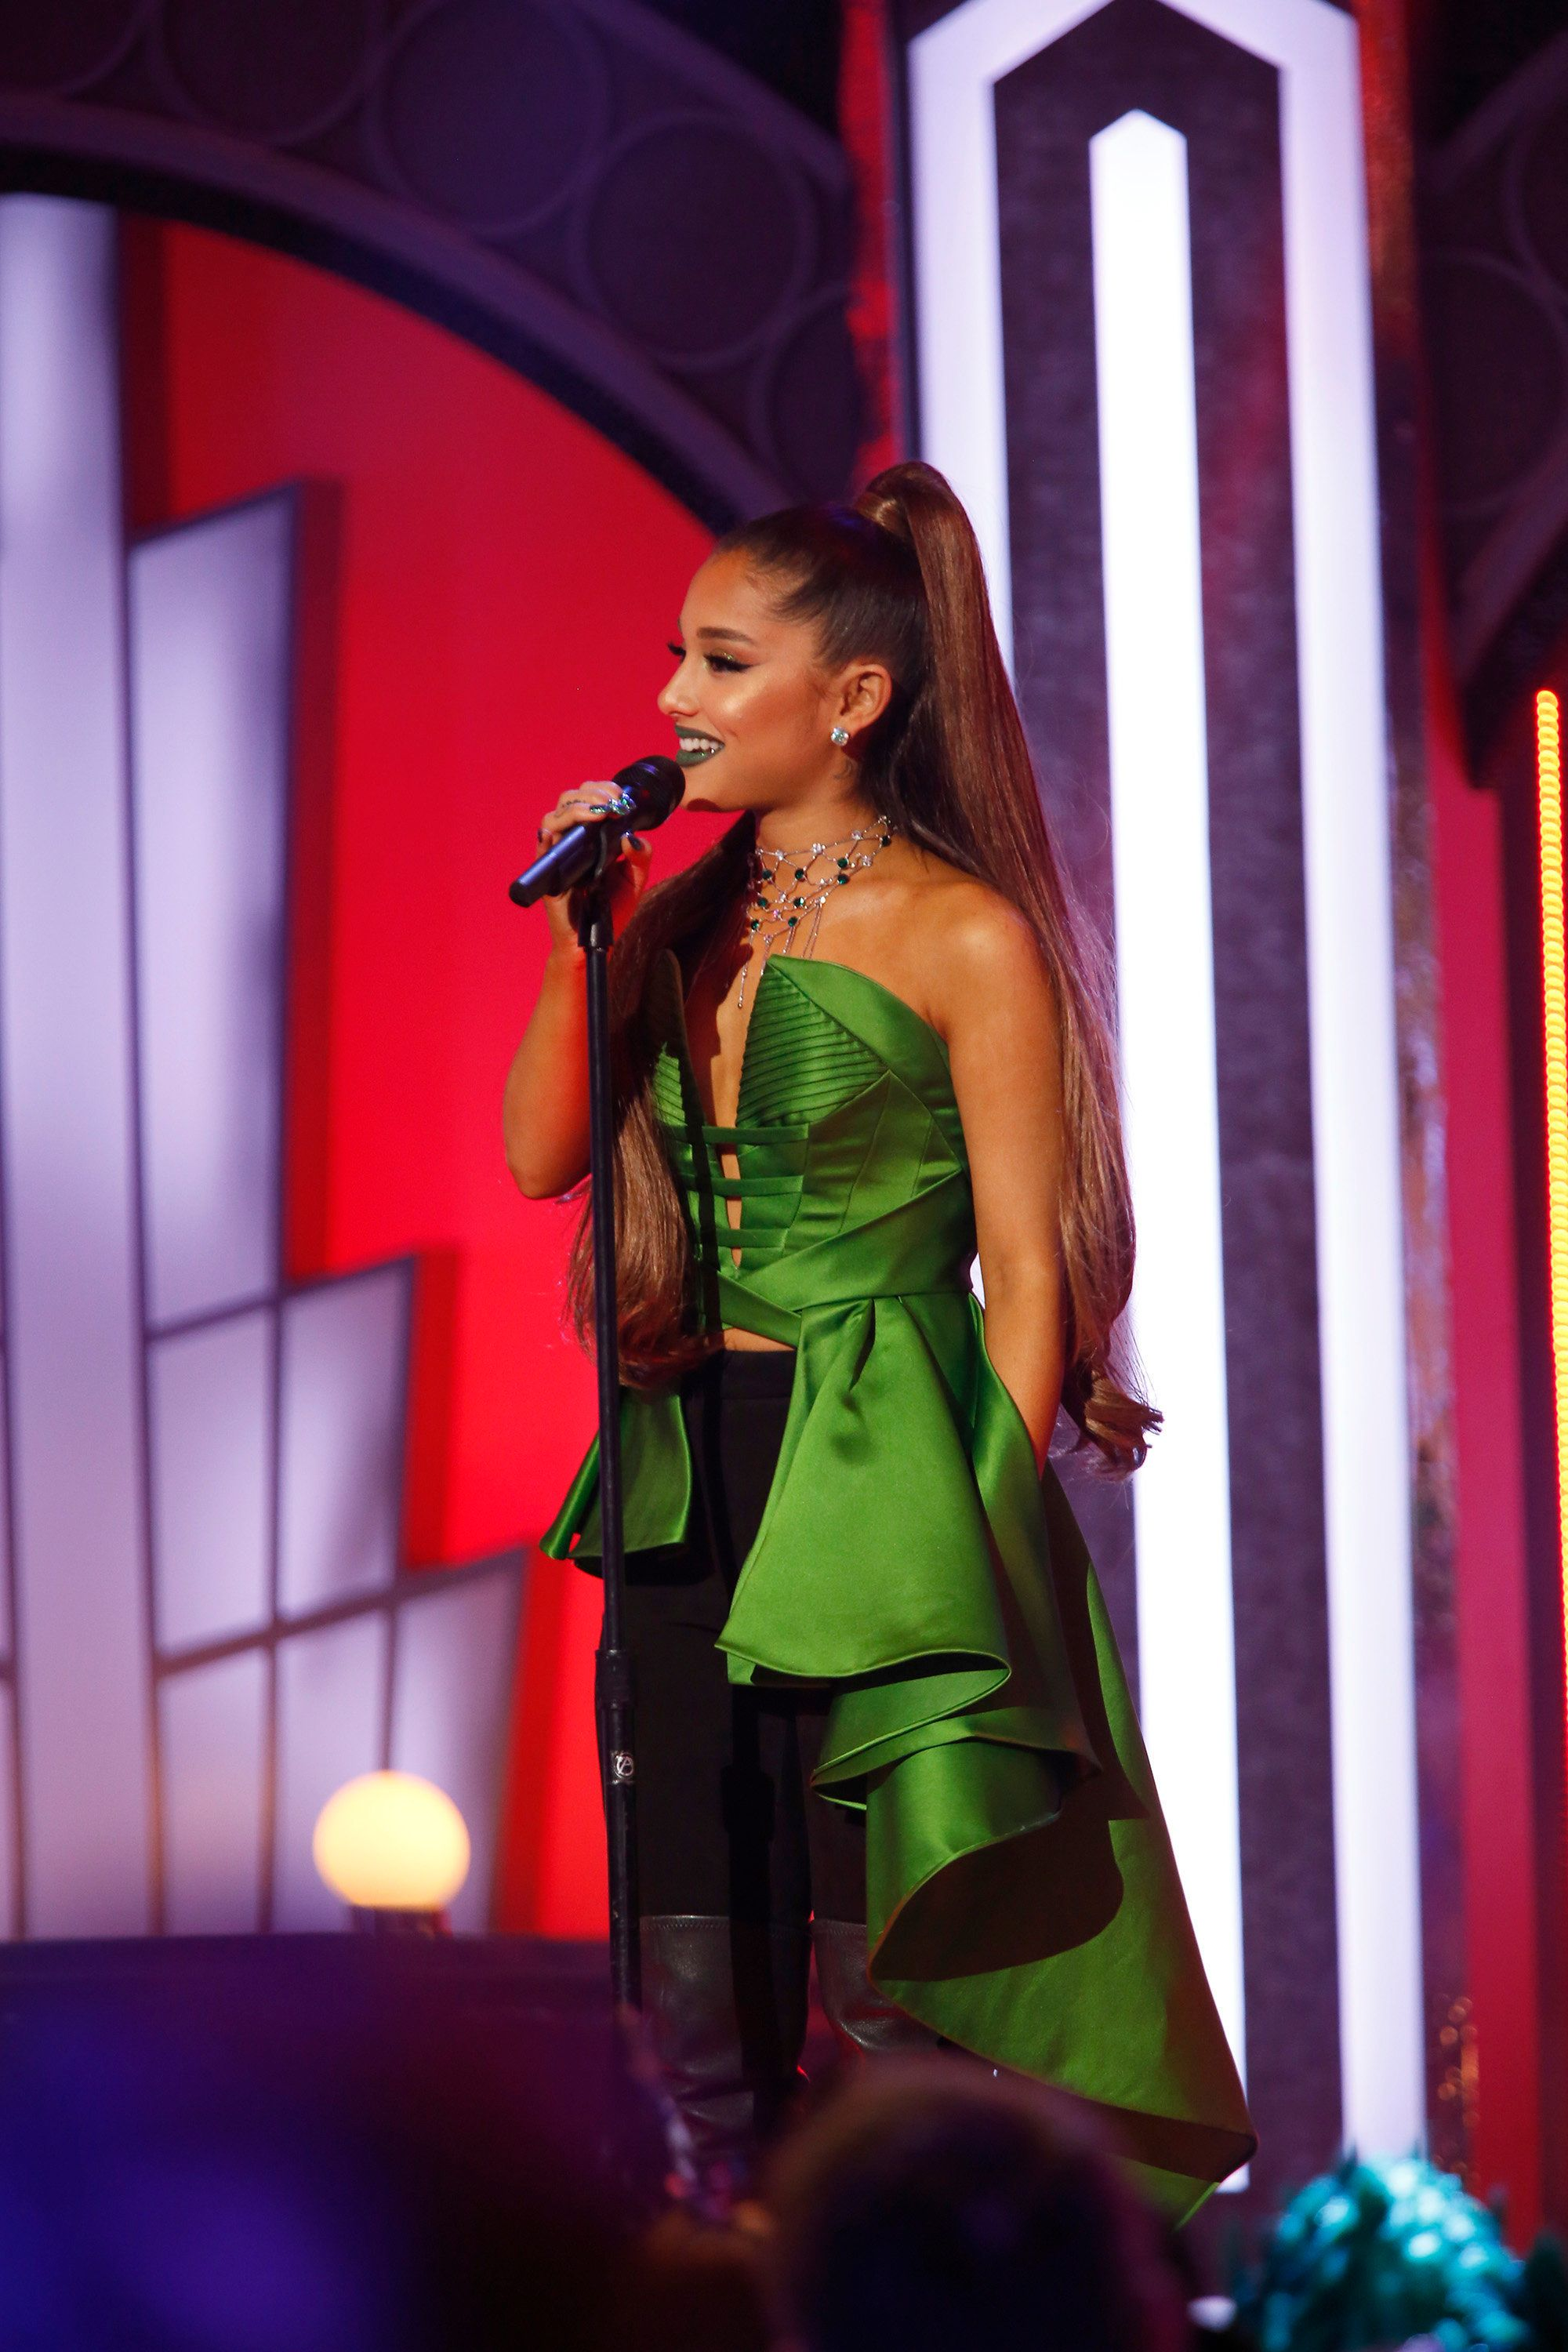 Does Ariana Grande Have A Secret New Album, Released Under The Name